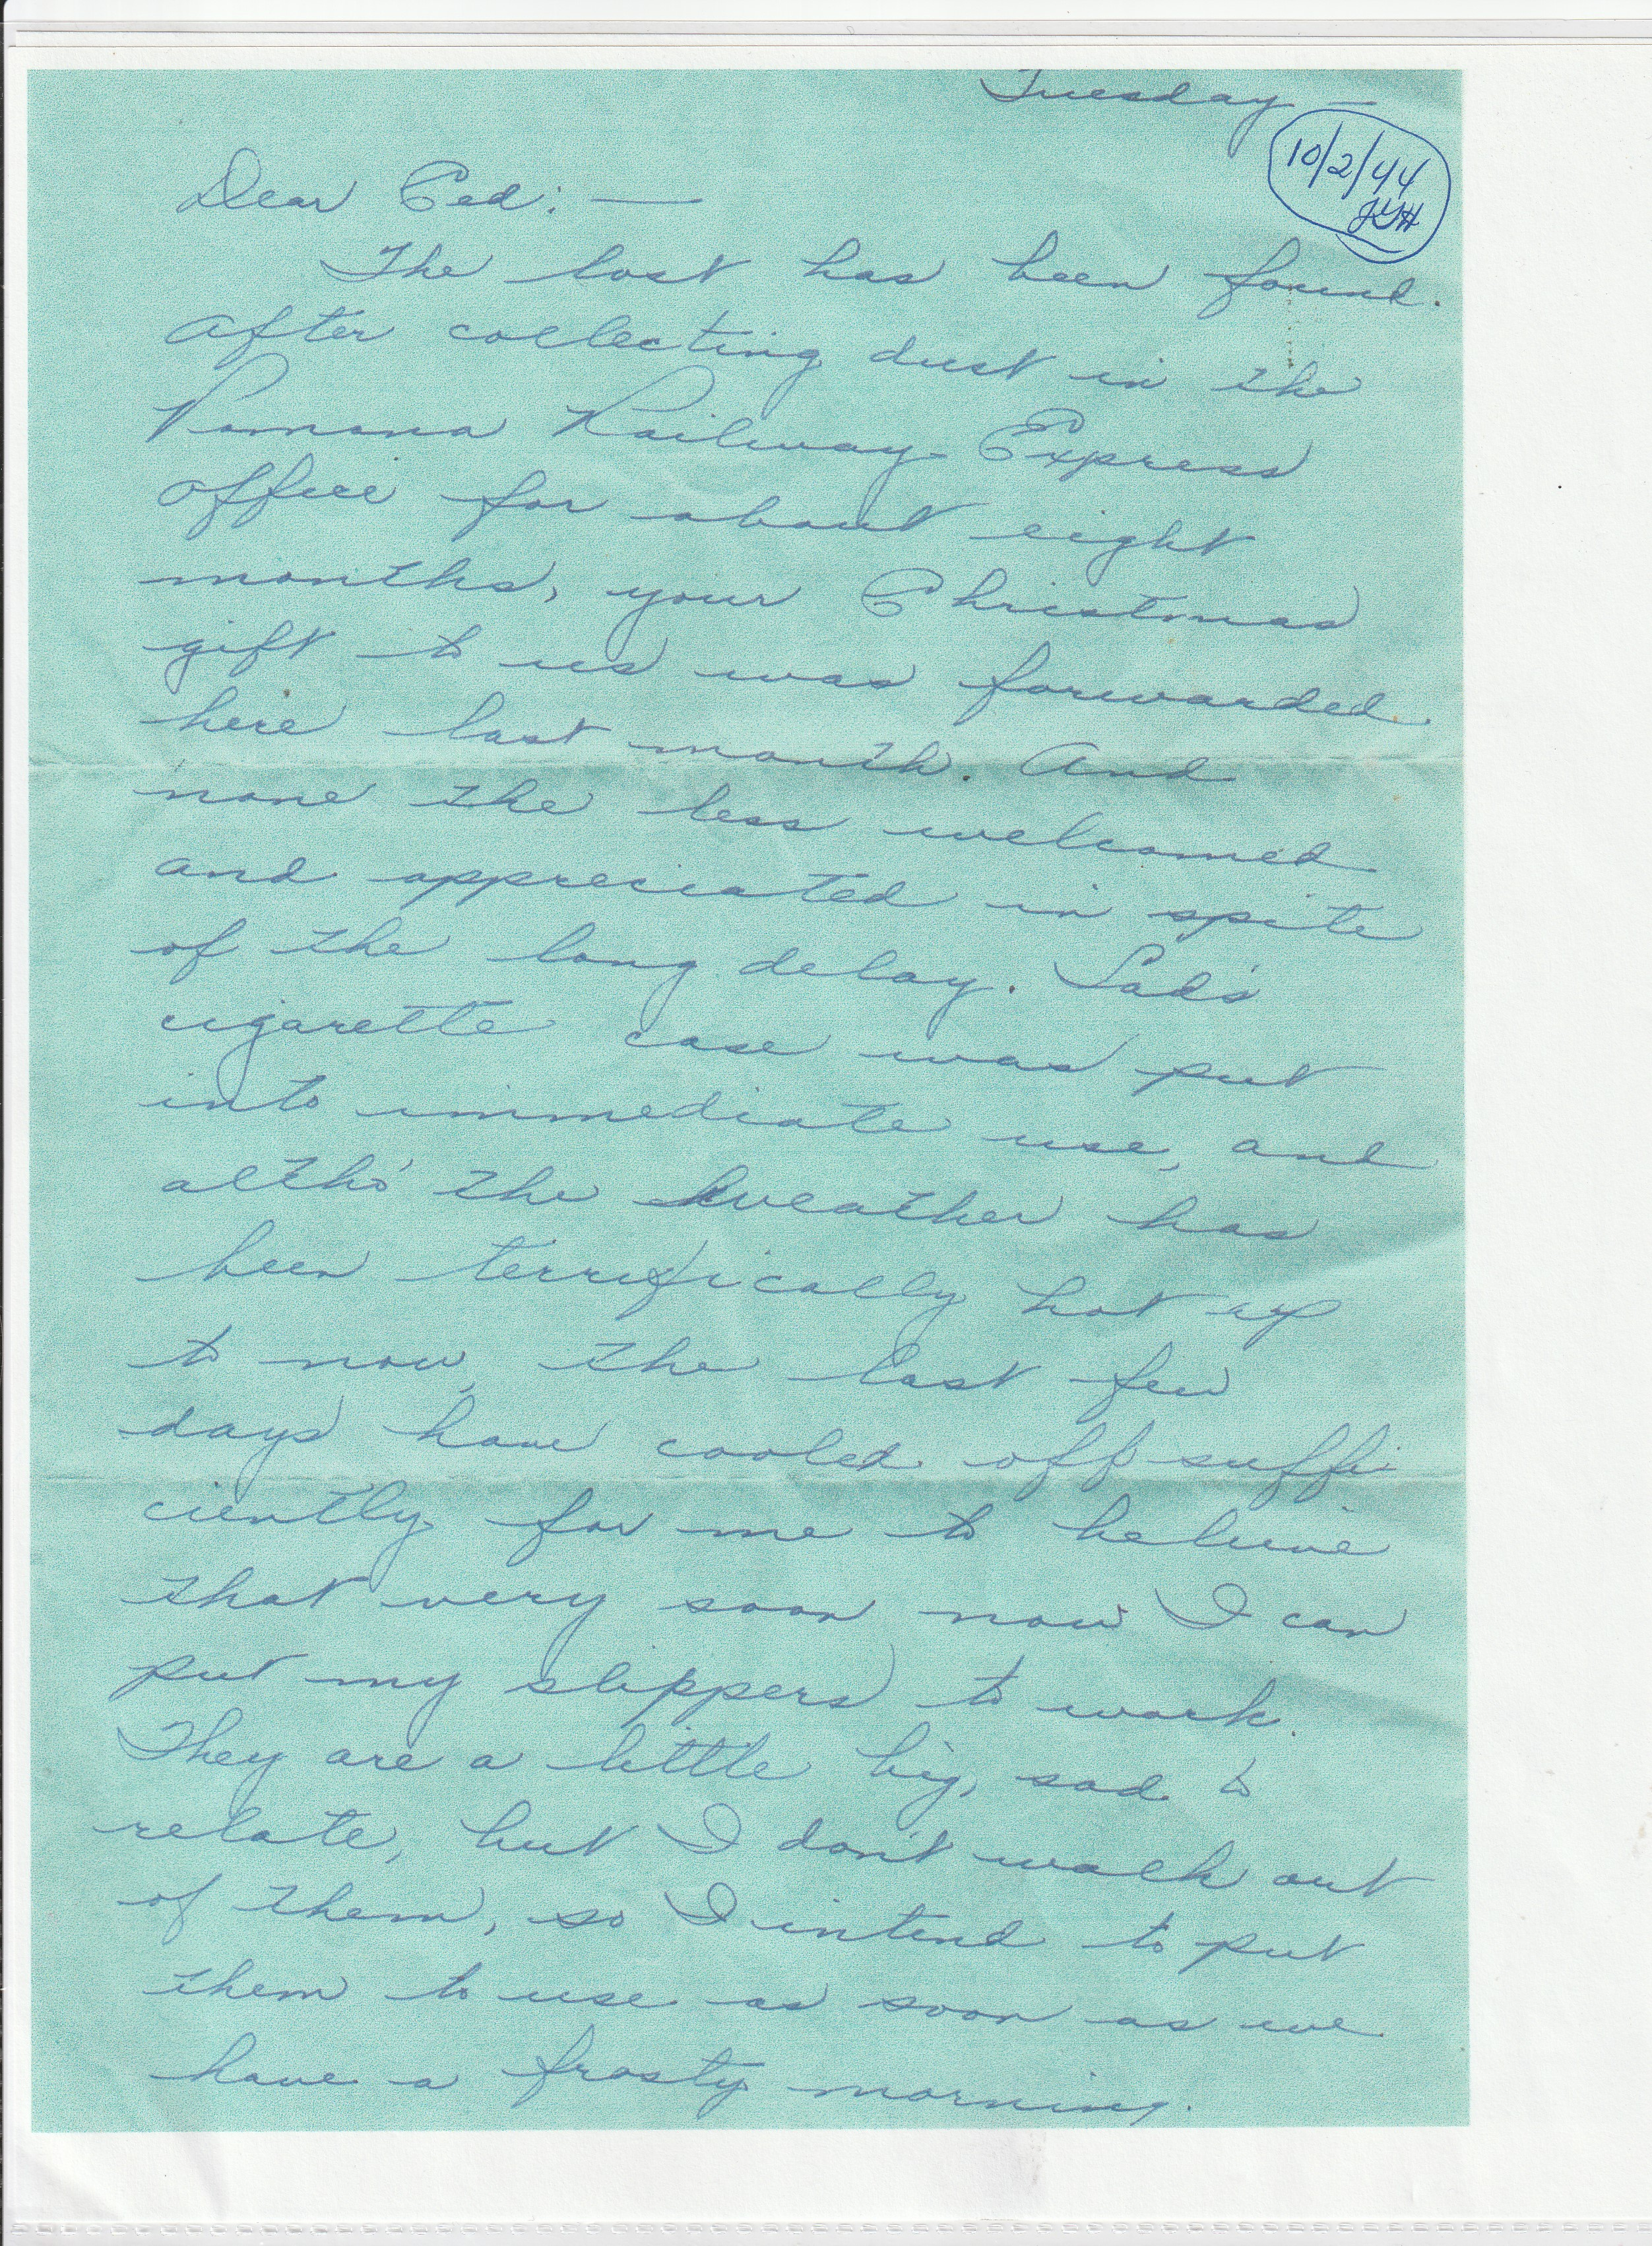 Army Life - Dear Ced - Thanks For The Christmas Gifts - October 2, 1944